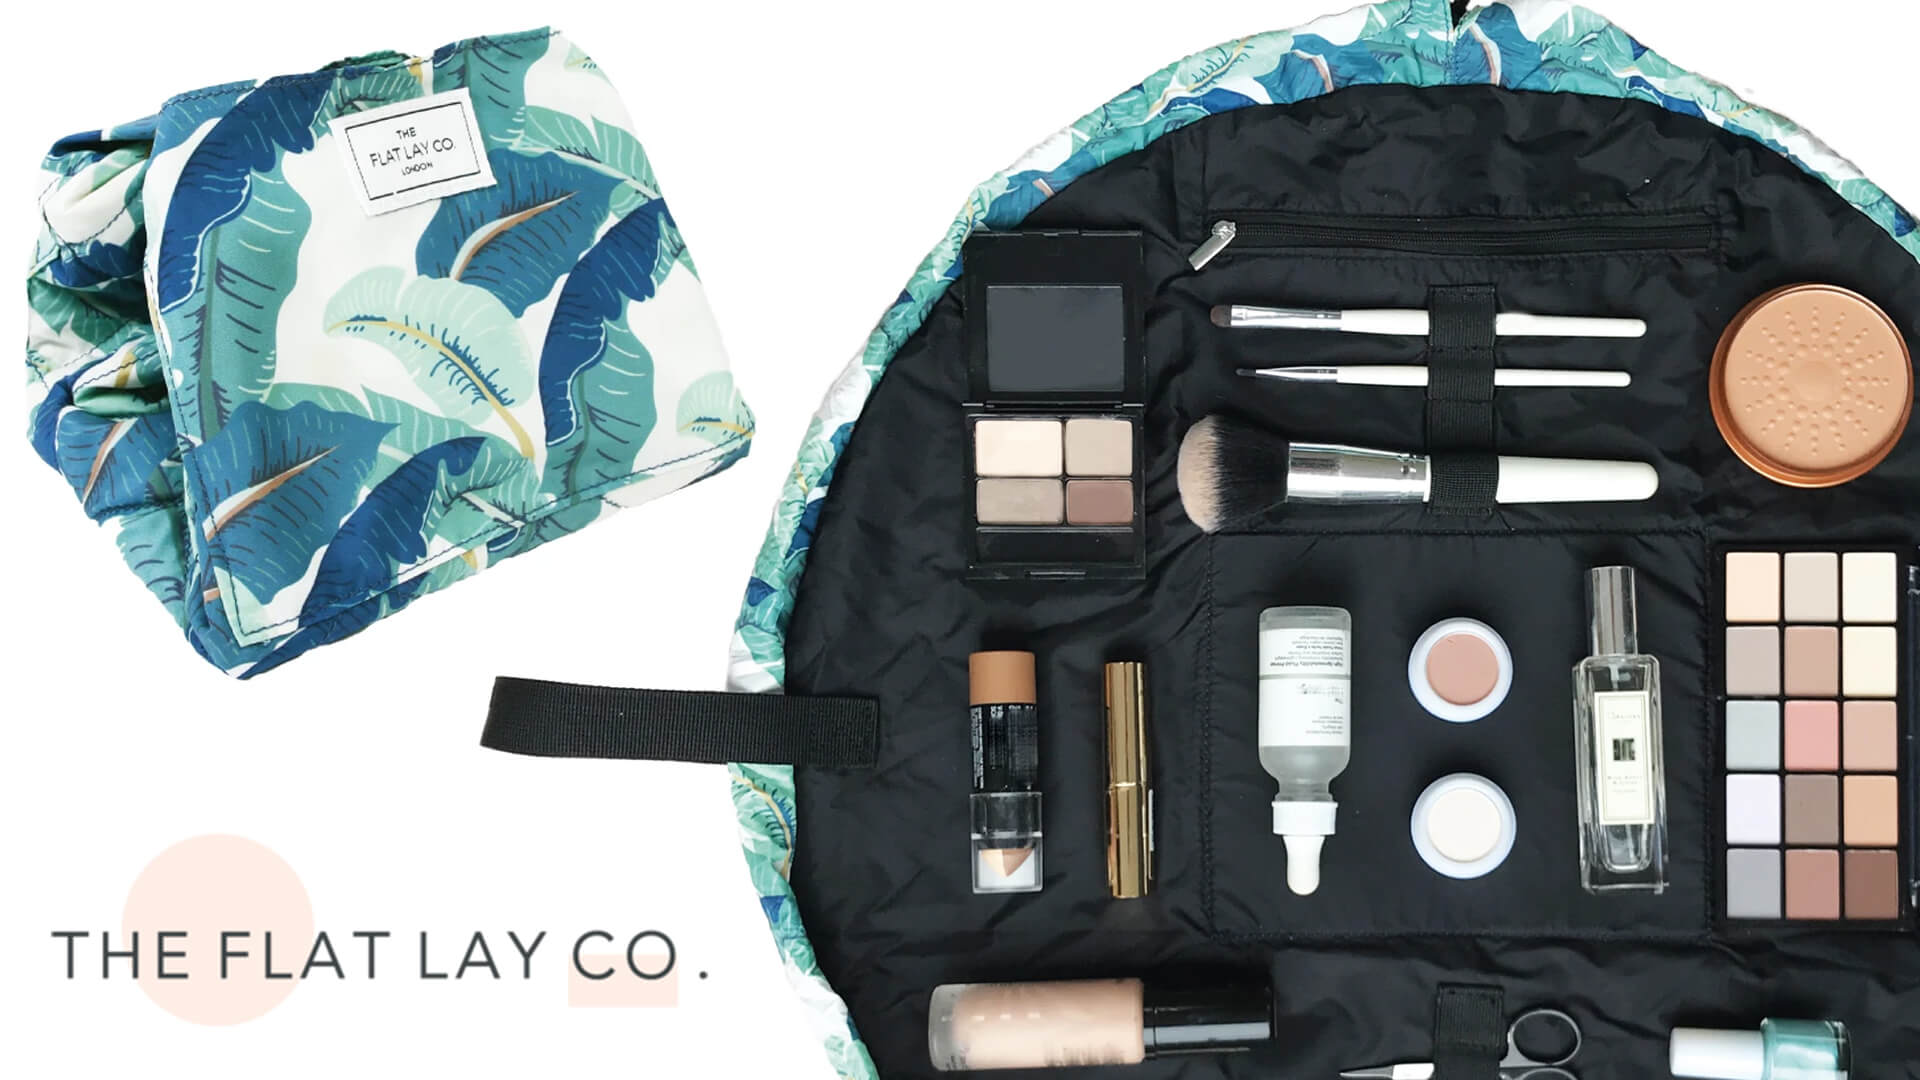 The flat lay co